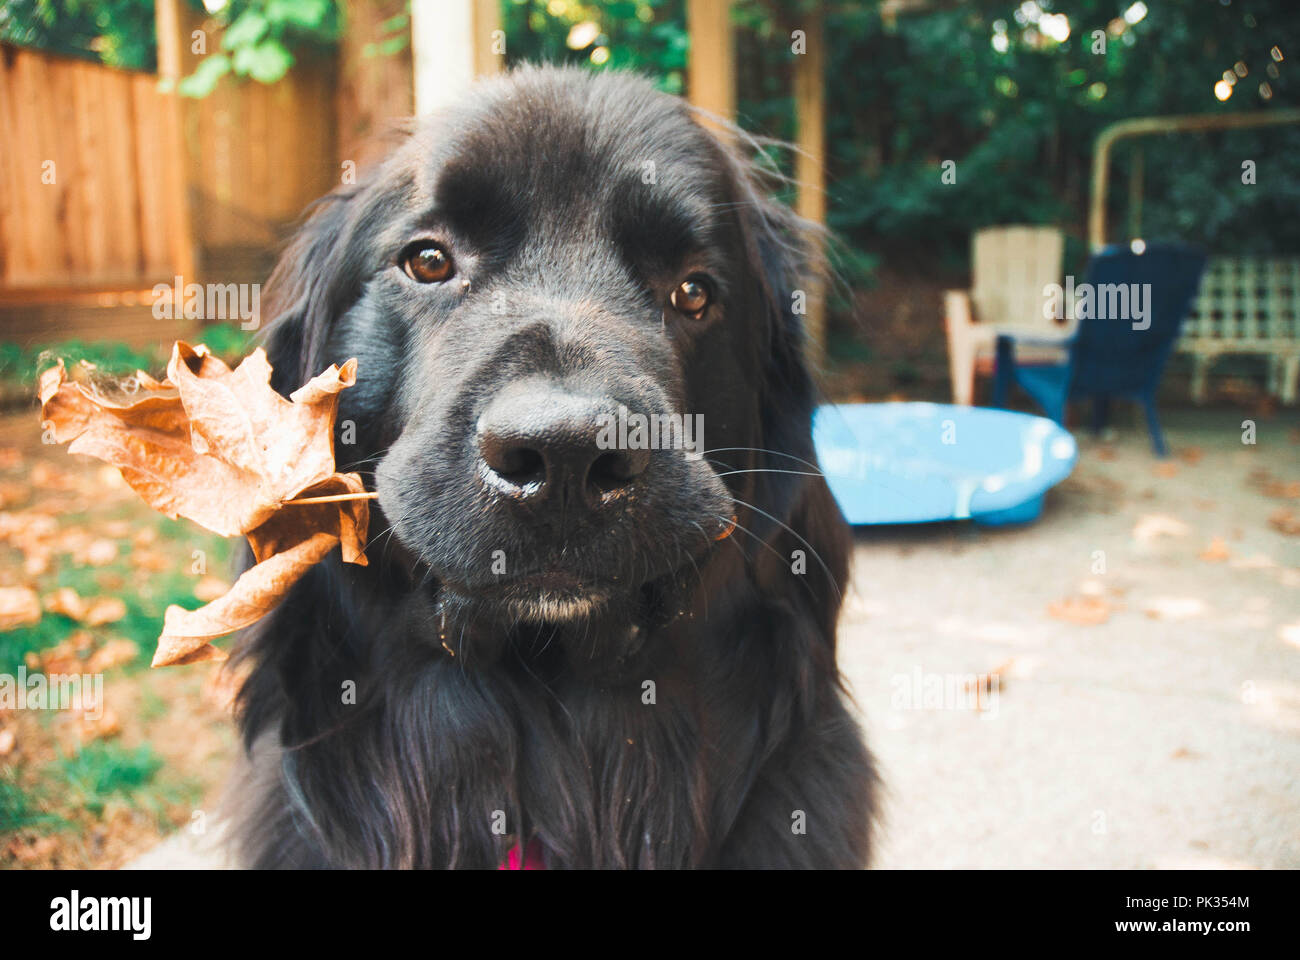 Newfie pup holding a leaf. - Stock Image